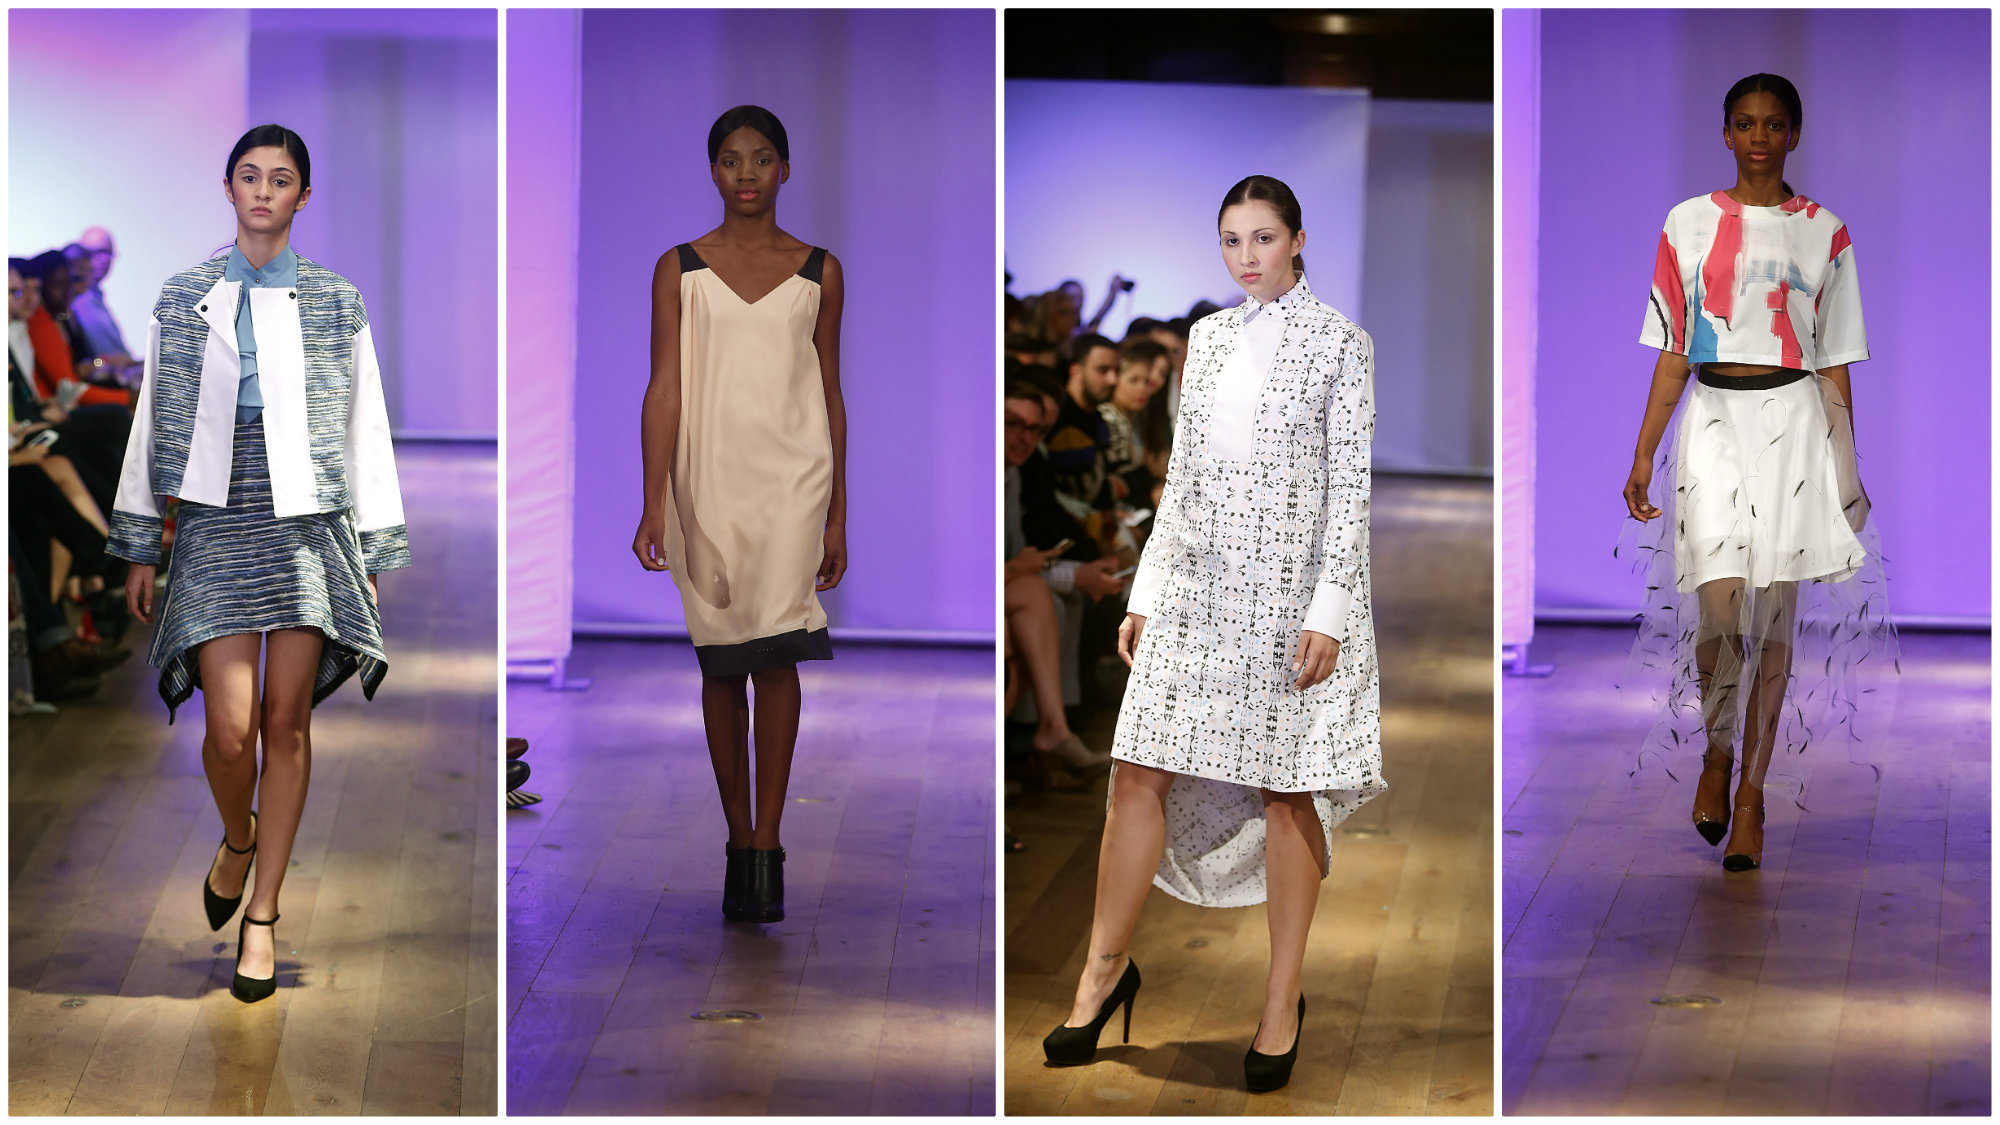 Los Angeles Fashion Week: A visual feast at William Bradley